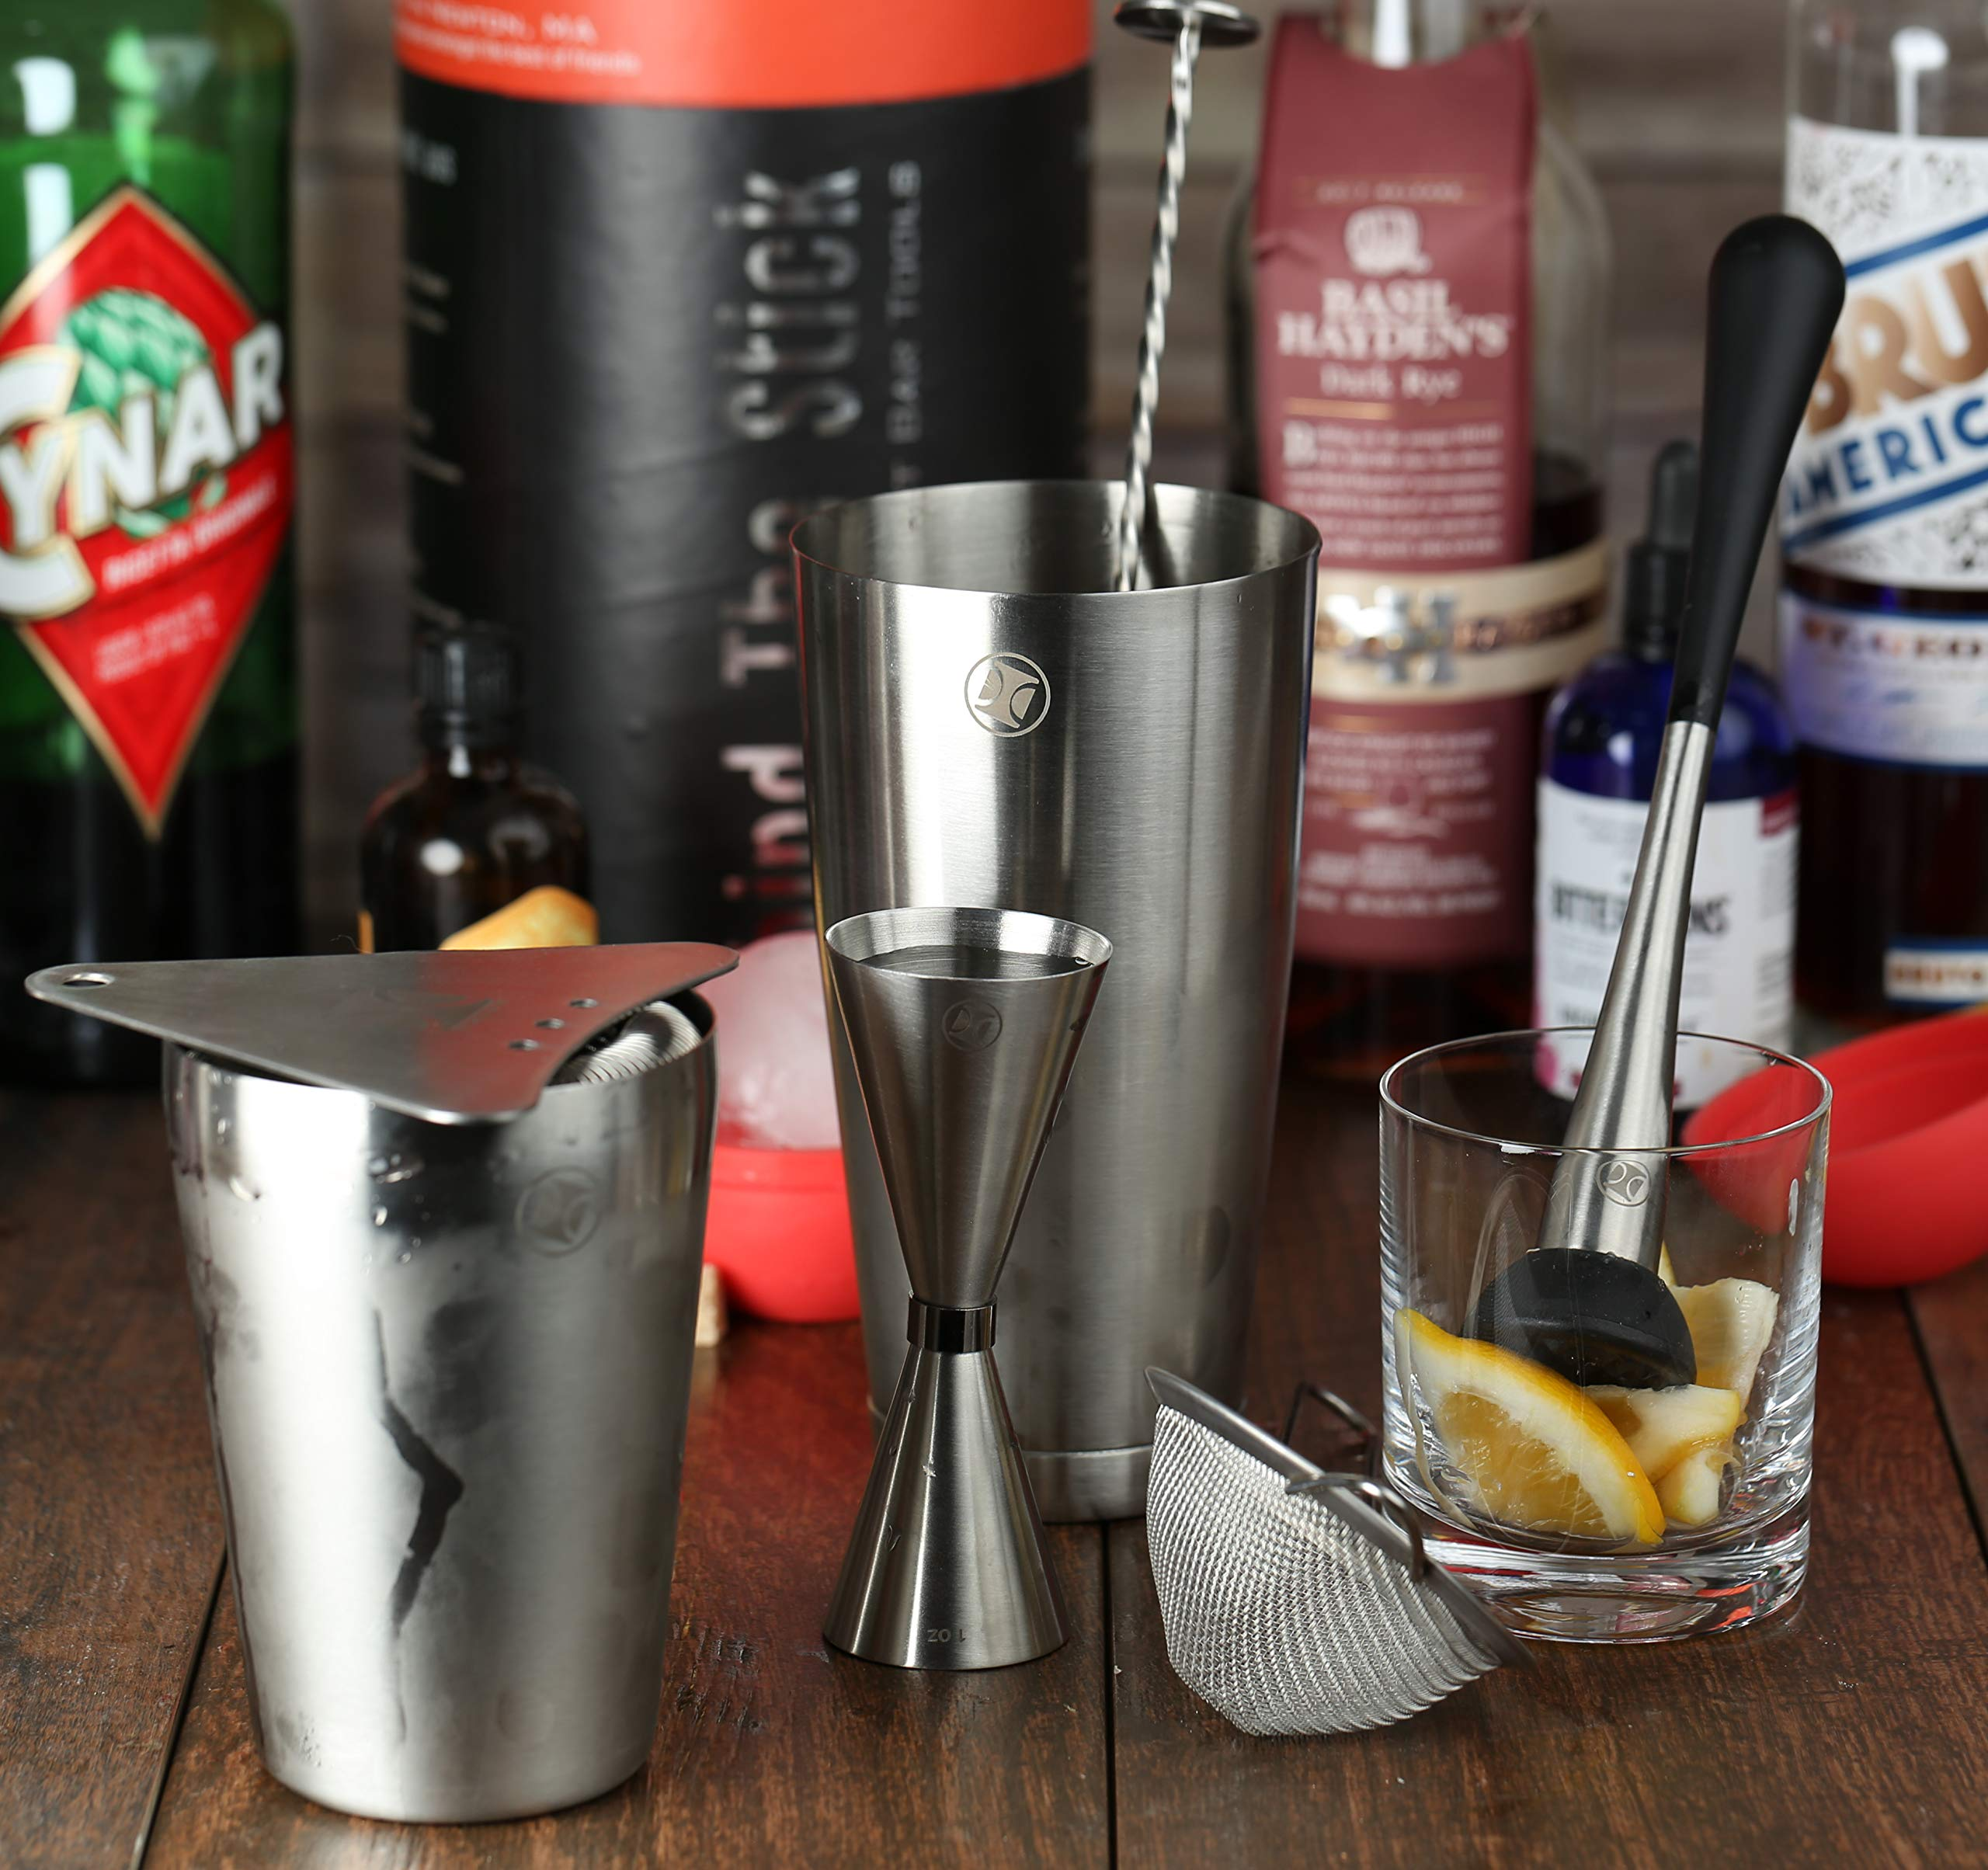 Boston Cocktail Shaker Set I Bar tools, 7 Piece Barware Kit - 2 Piece Boston Shaker, Jigger, Bar Spoon, Hawthorne & Citrus Strainers, Muddler in Brushed Stainless Steel by The Elan Collective by The Elan Collective (Image #3)